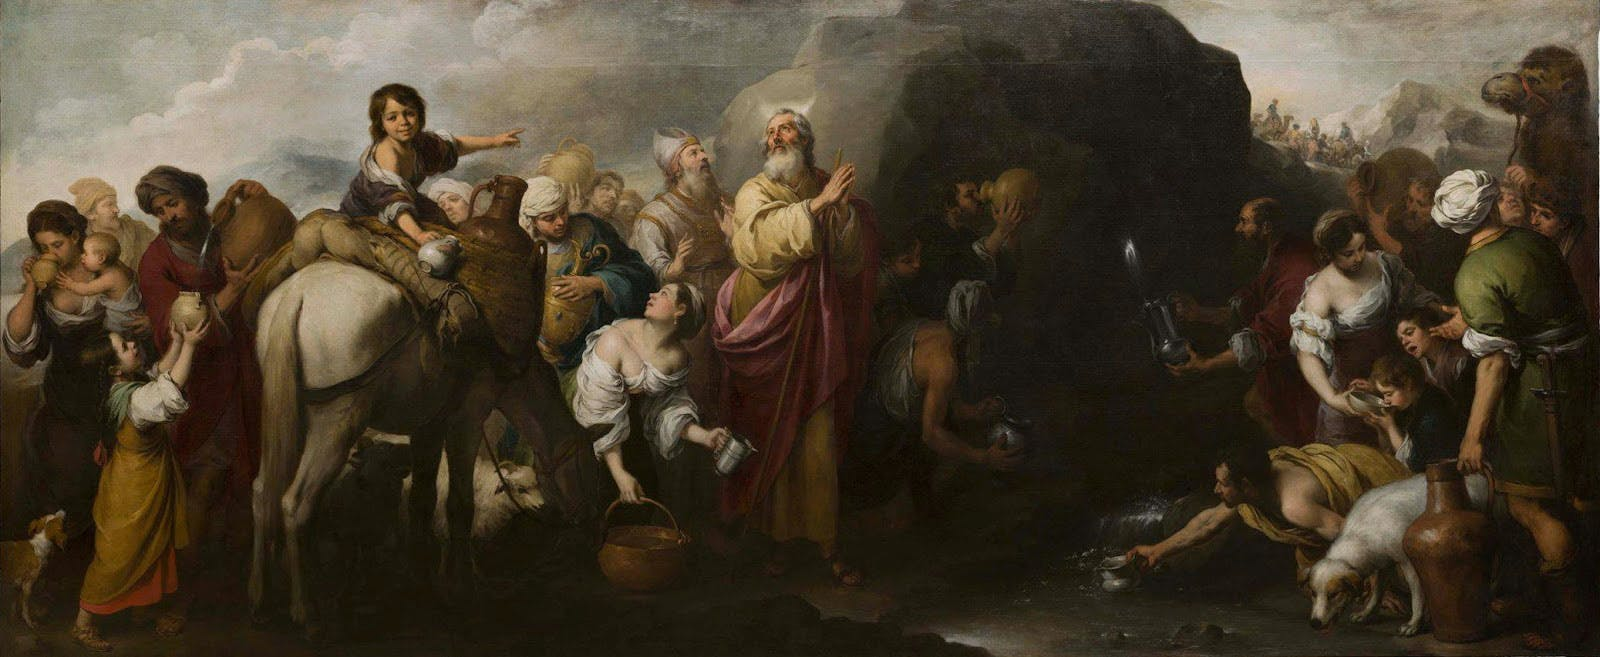 Moses Striking the Rock (1670–74), Bartolomé Esteban Murillo. Hospital de la Caridad